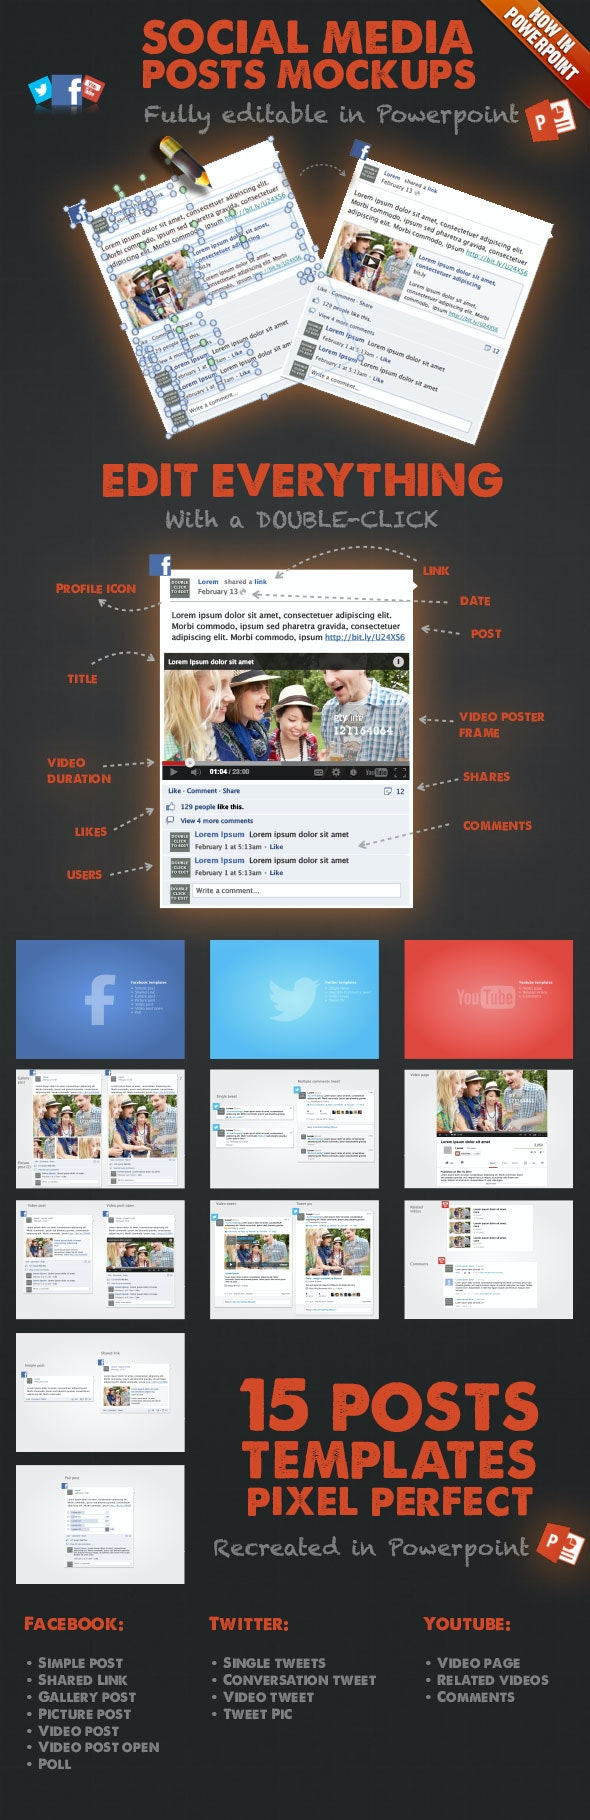 15 Social Media Posts Editable Mockups in PPT - Presentation Templates